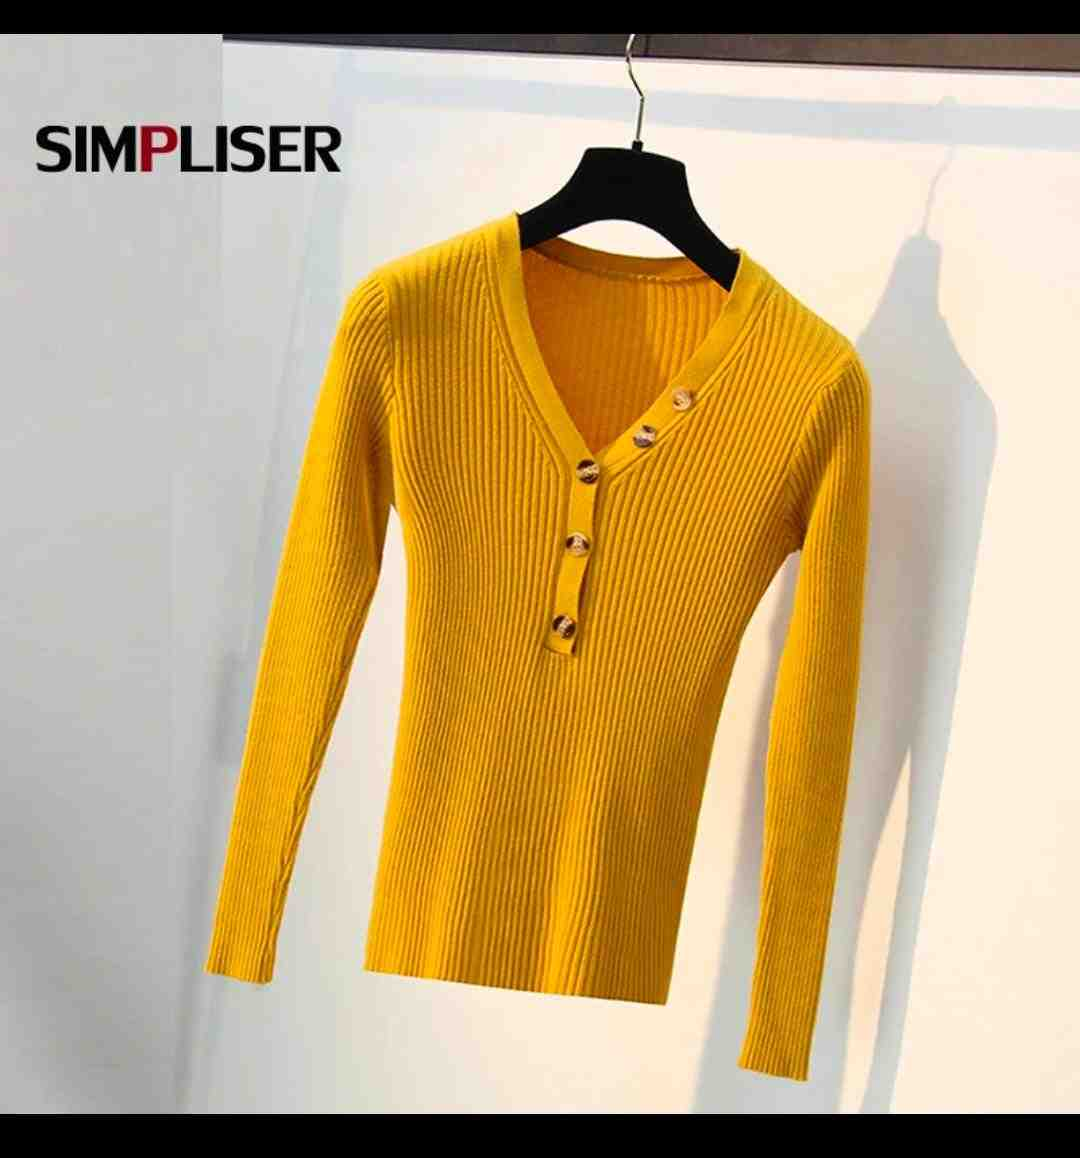 Casual knitted fabric skinny fit deep neck tshirt